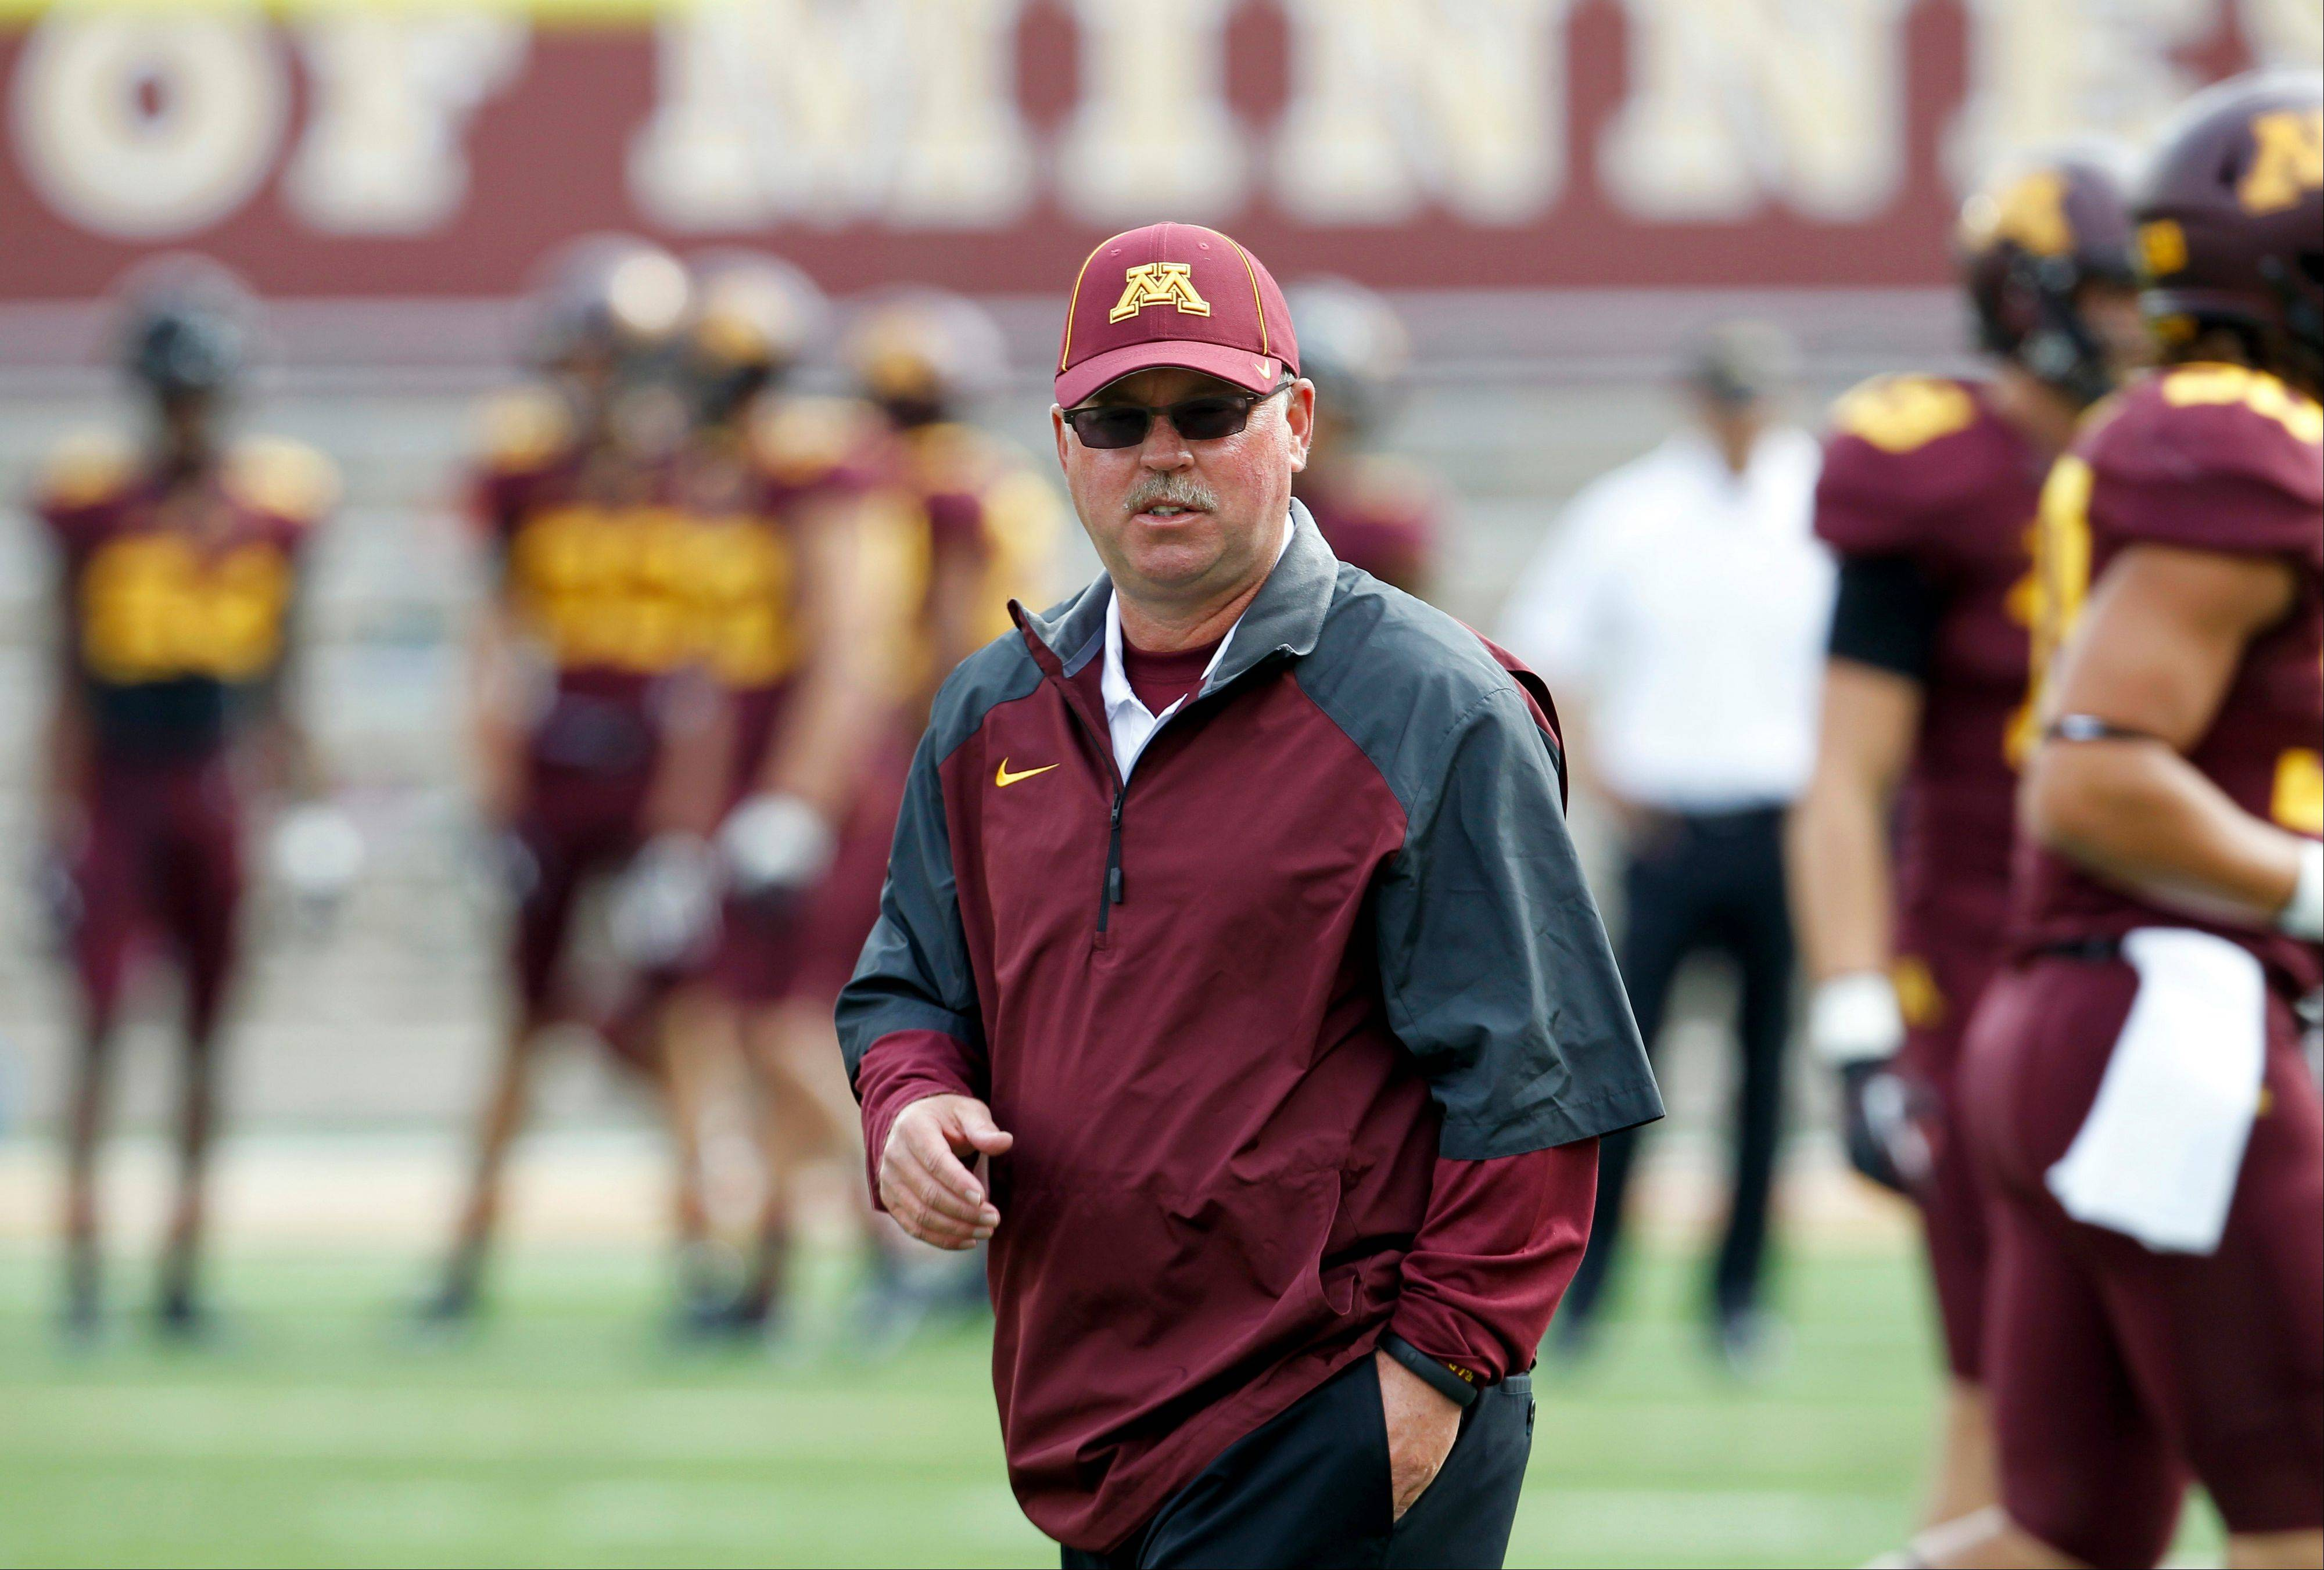 Minnesota head coach Jerry Kill has had five seizures on game days.